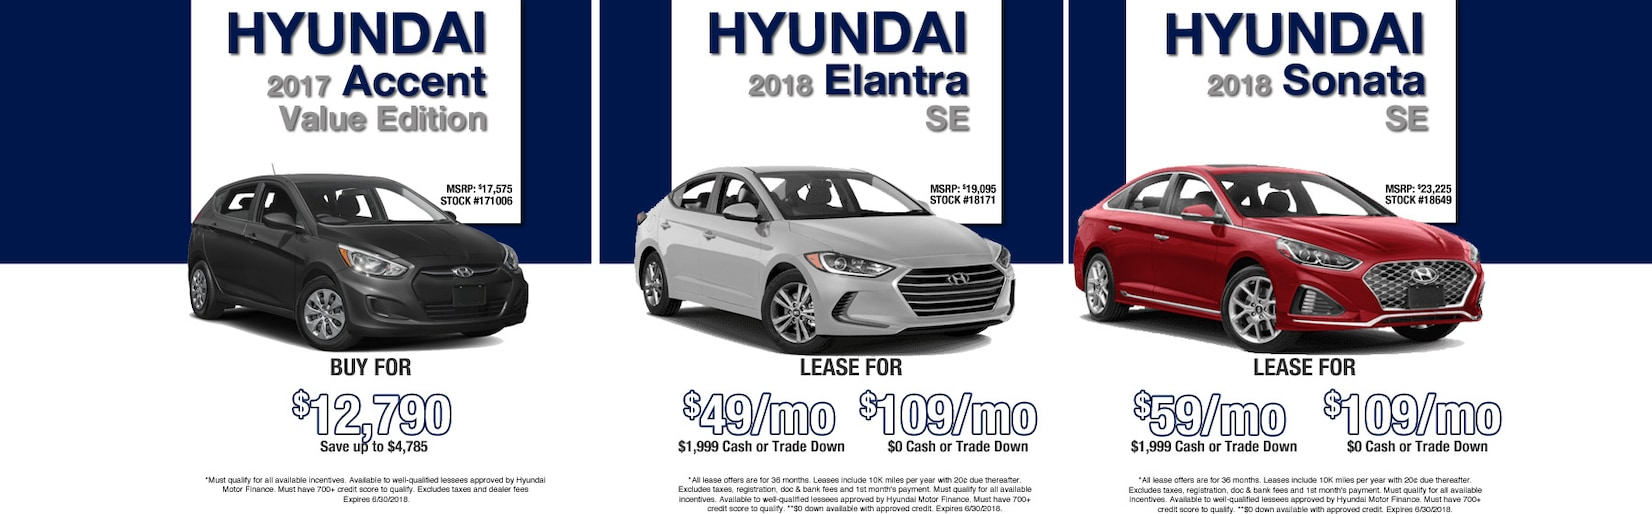 vehicle spec first generation unveiled leasing hyundai the blog new